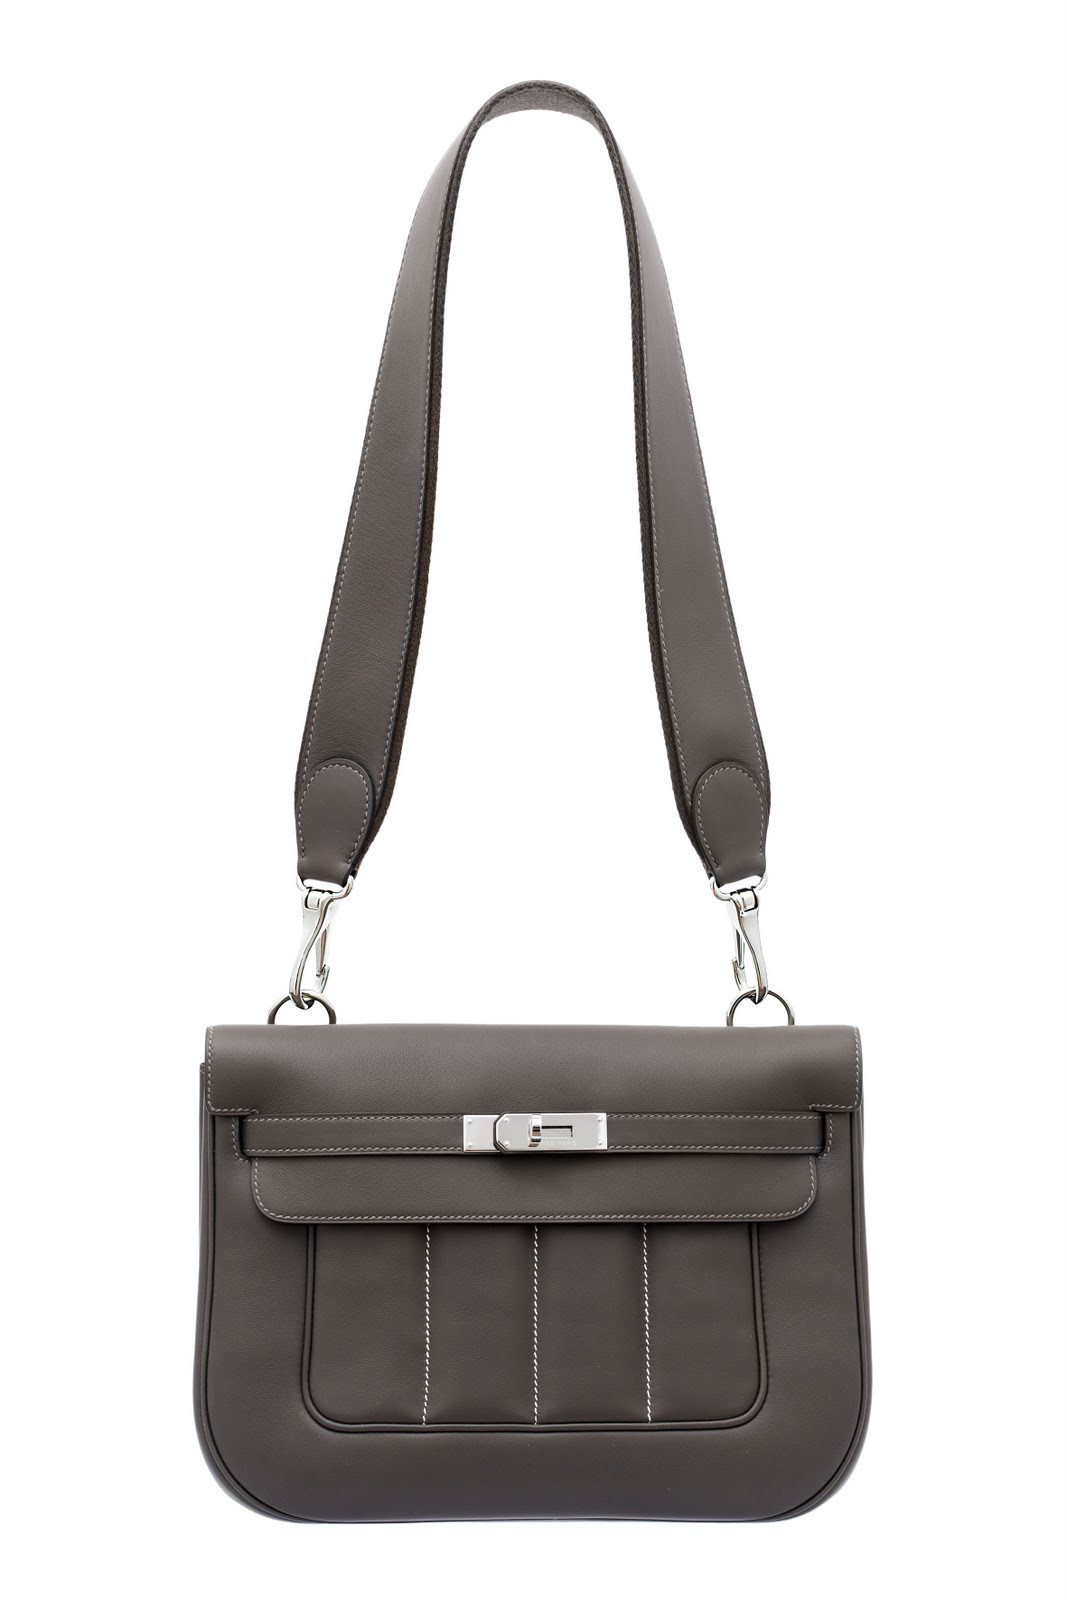 Hermes Berlin ebag in grey